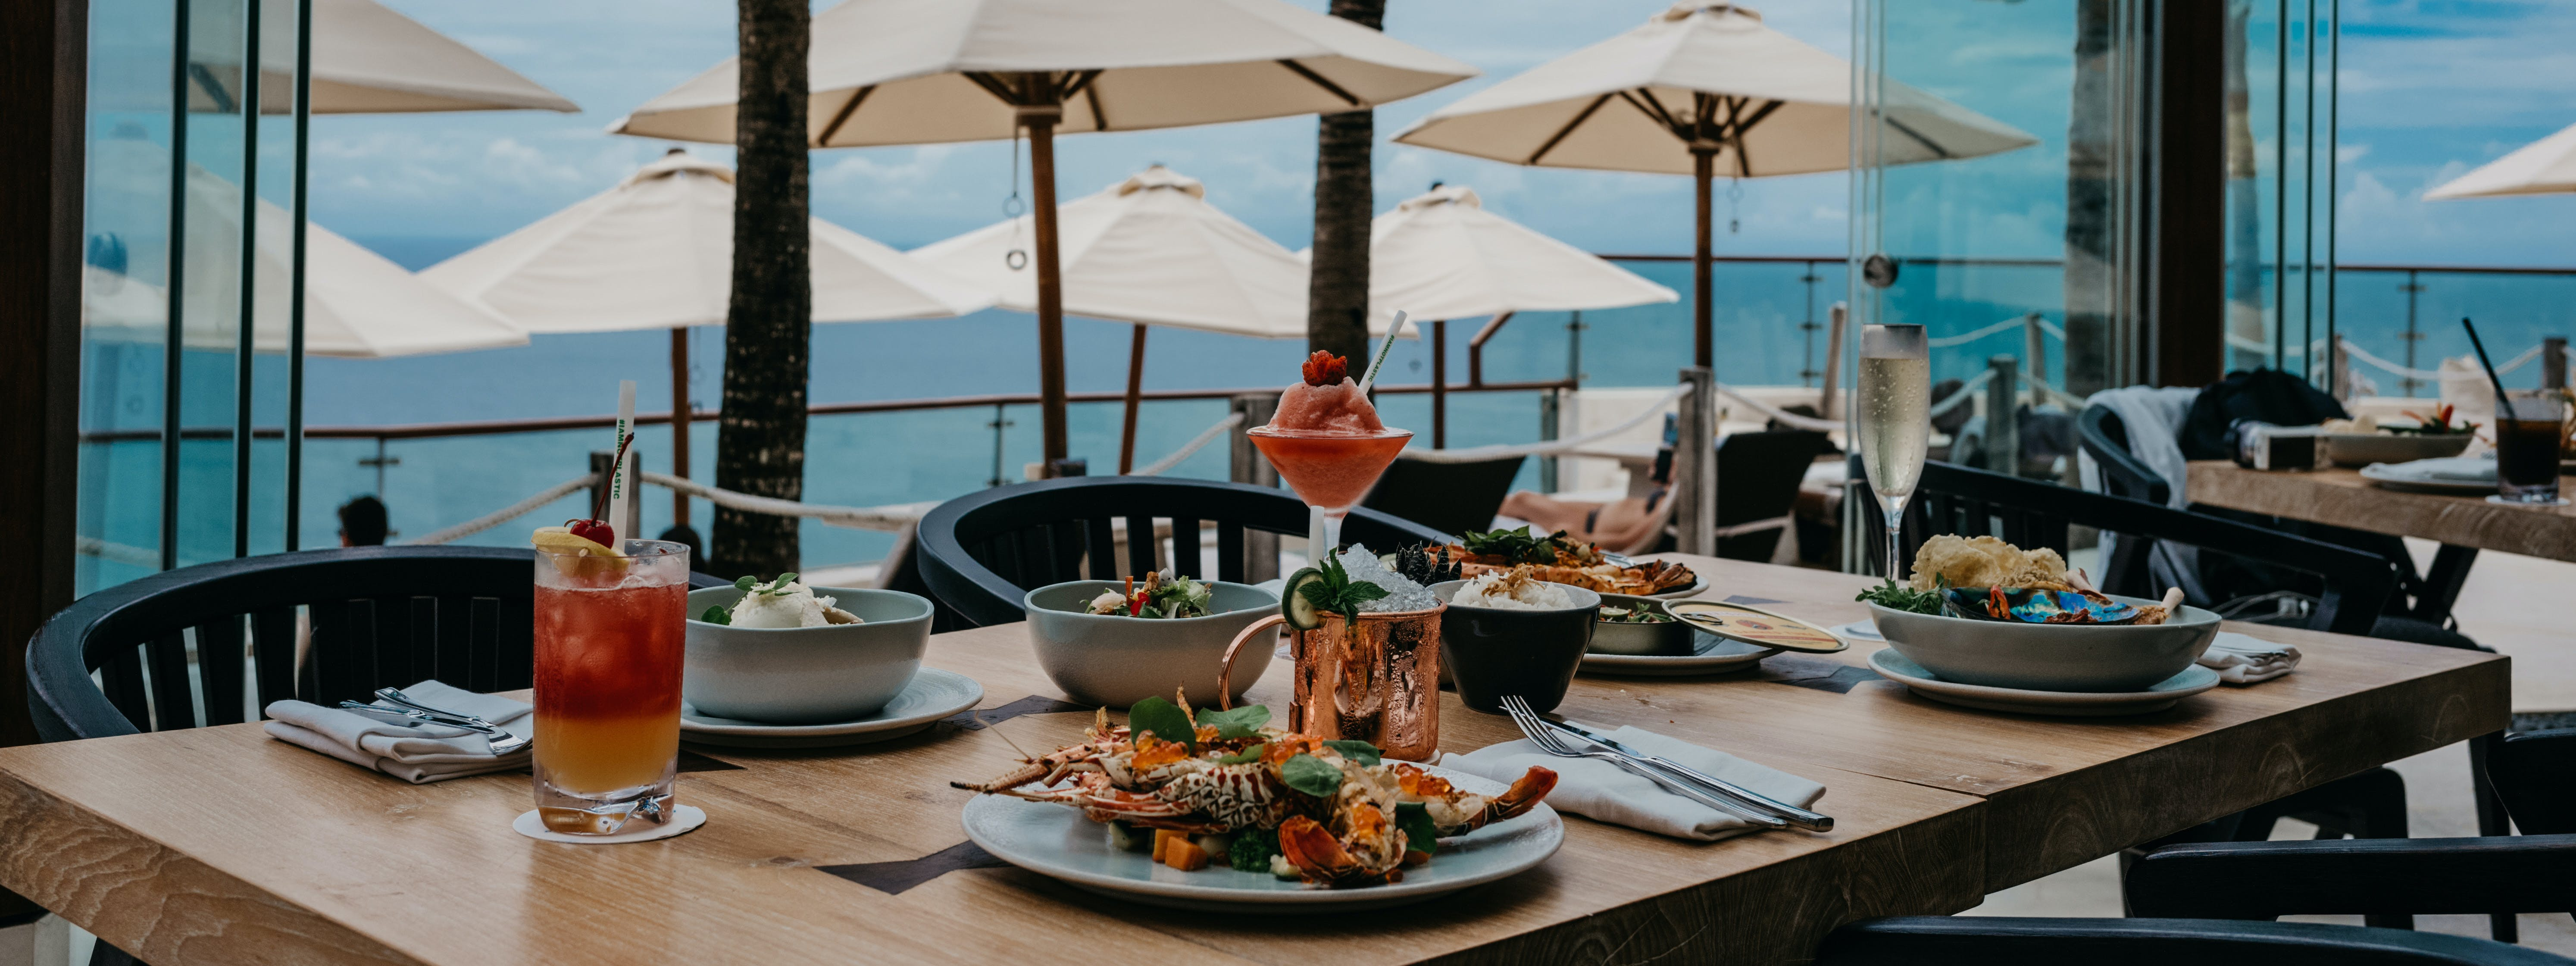 Oneeighty dining at The edge Luxury Villa Resort, Uluwatu Bali